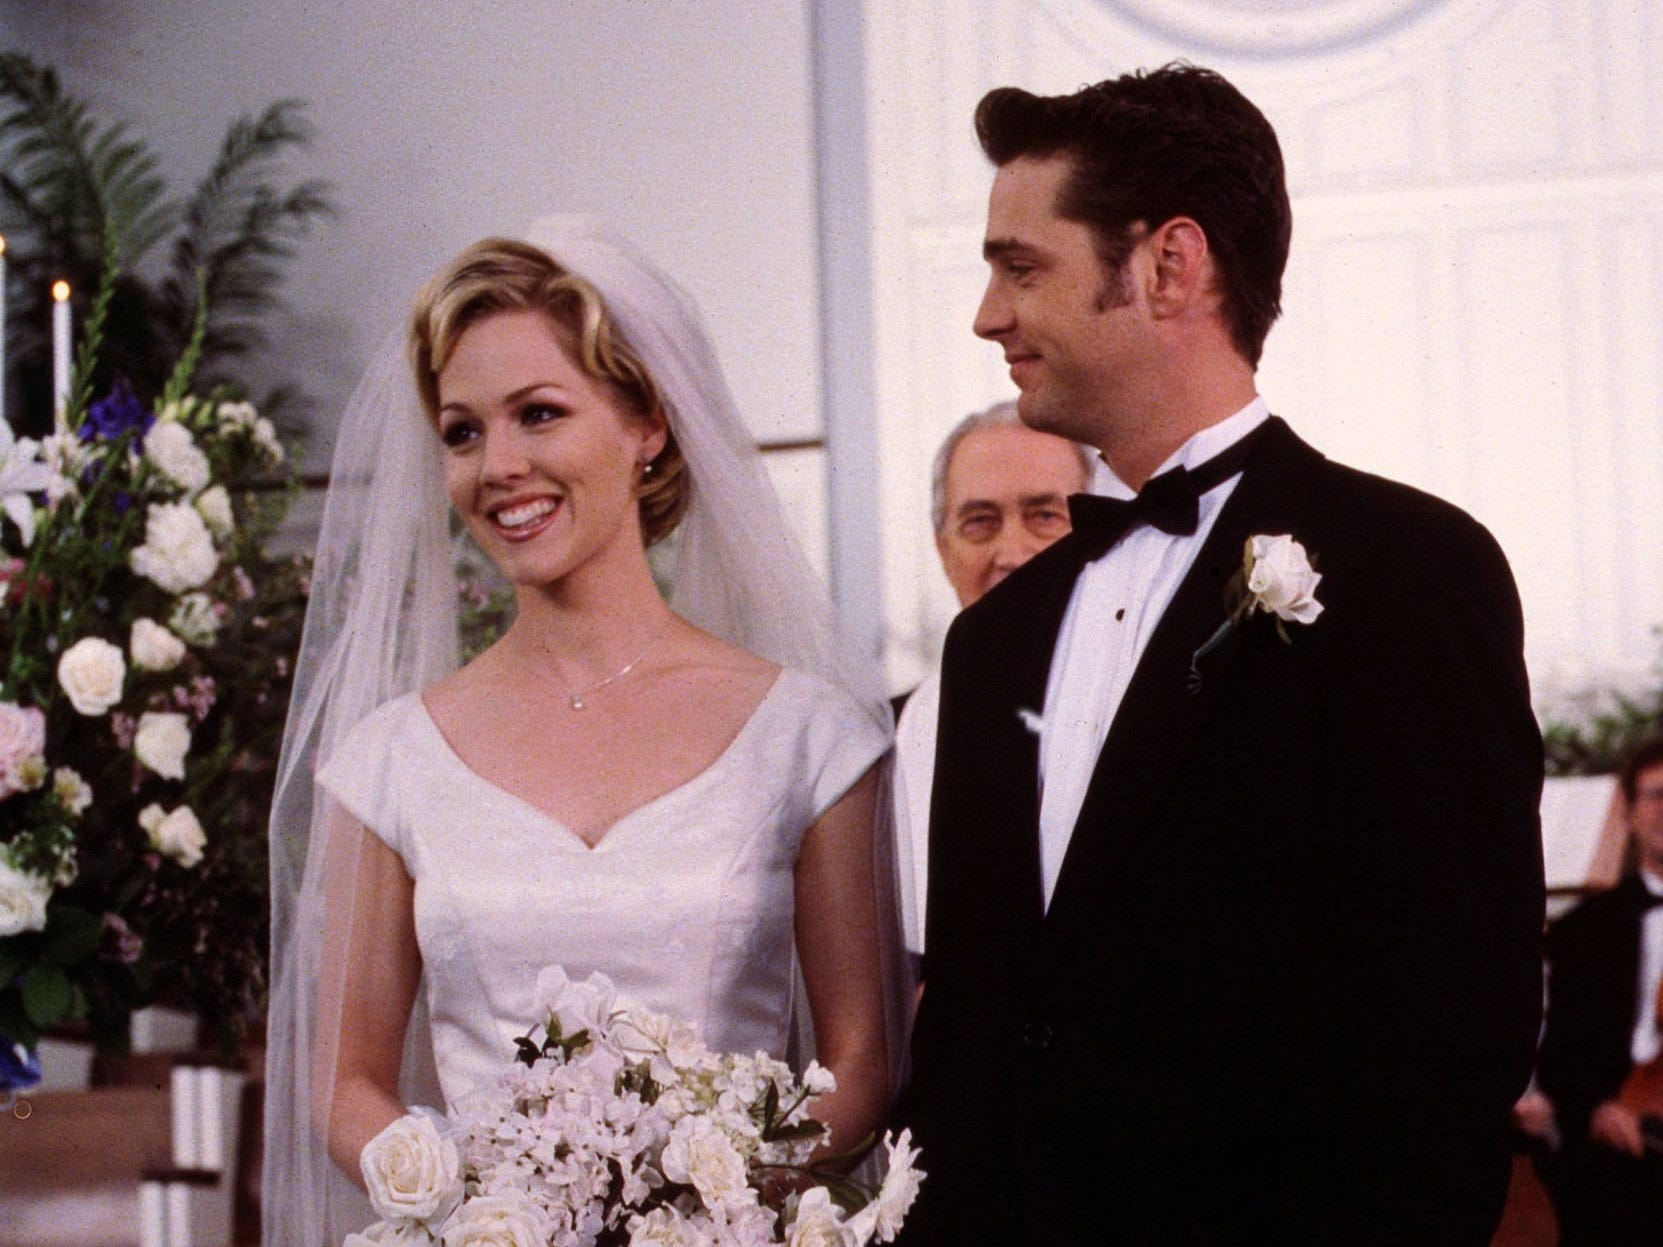 Brandon's most serious relationship was with his sister's friend, Kelly Taylor (Jenni Garth), though the two stopped just shy of the altar. Priestley left the show in Season 9 and Brandon as written out as traveling the world for work. He did return as a guest-star capacity. however.